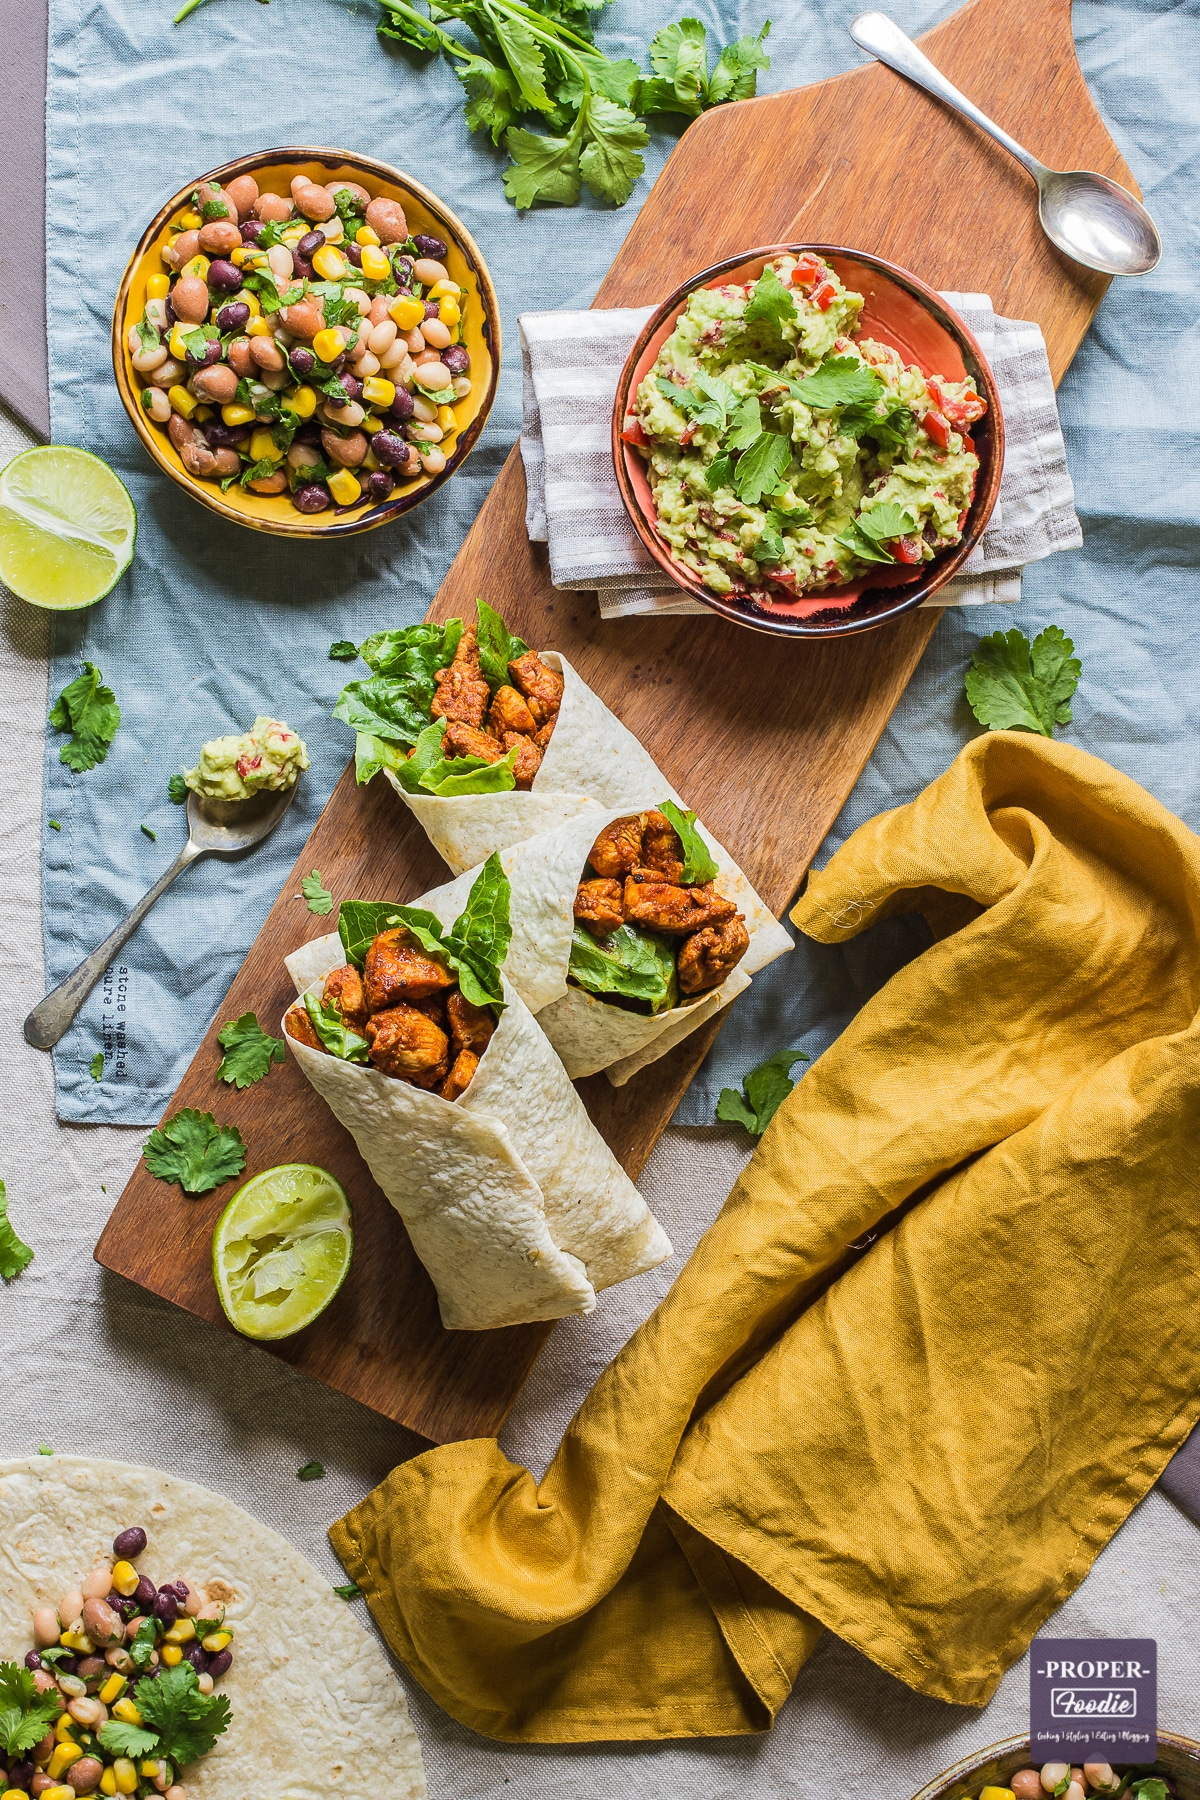 three chicken wraps on a board viewed from above with half a lime squeezed at the side and small bowls of bean salad and smashed avocado above